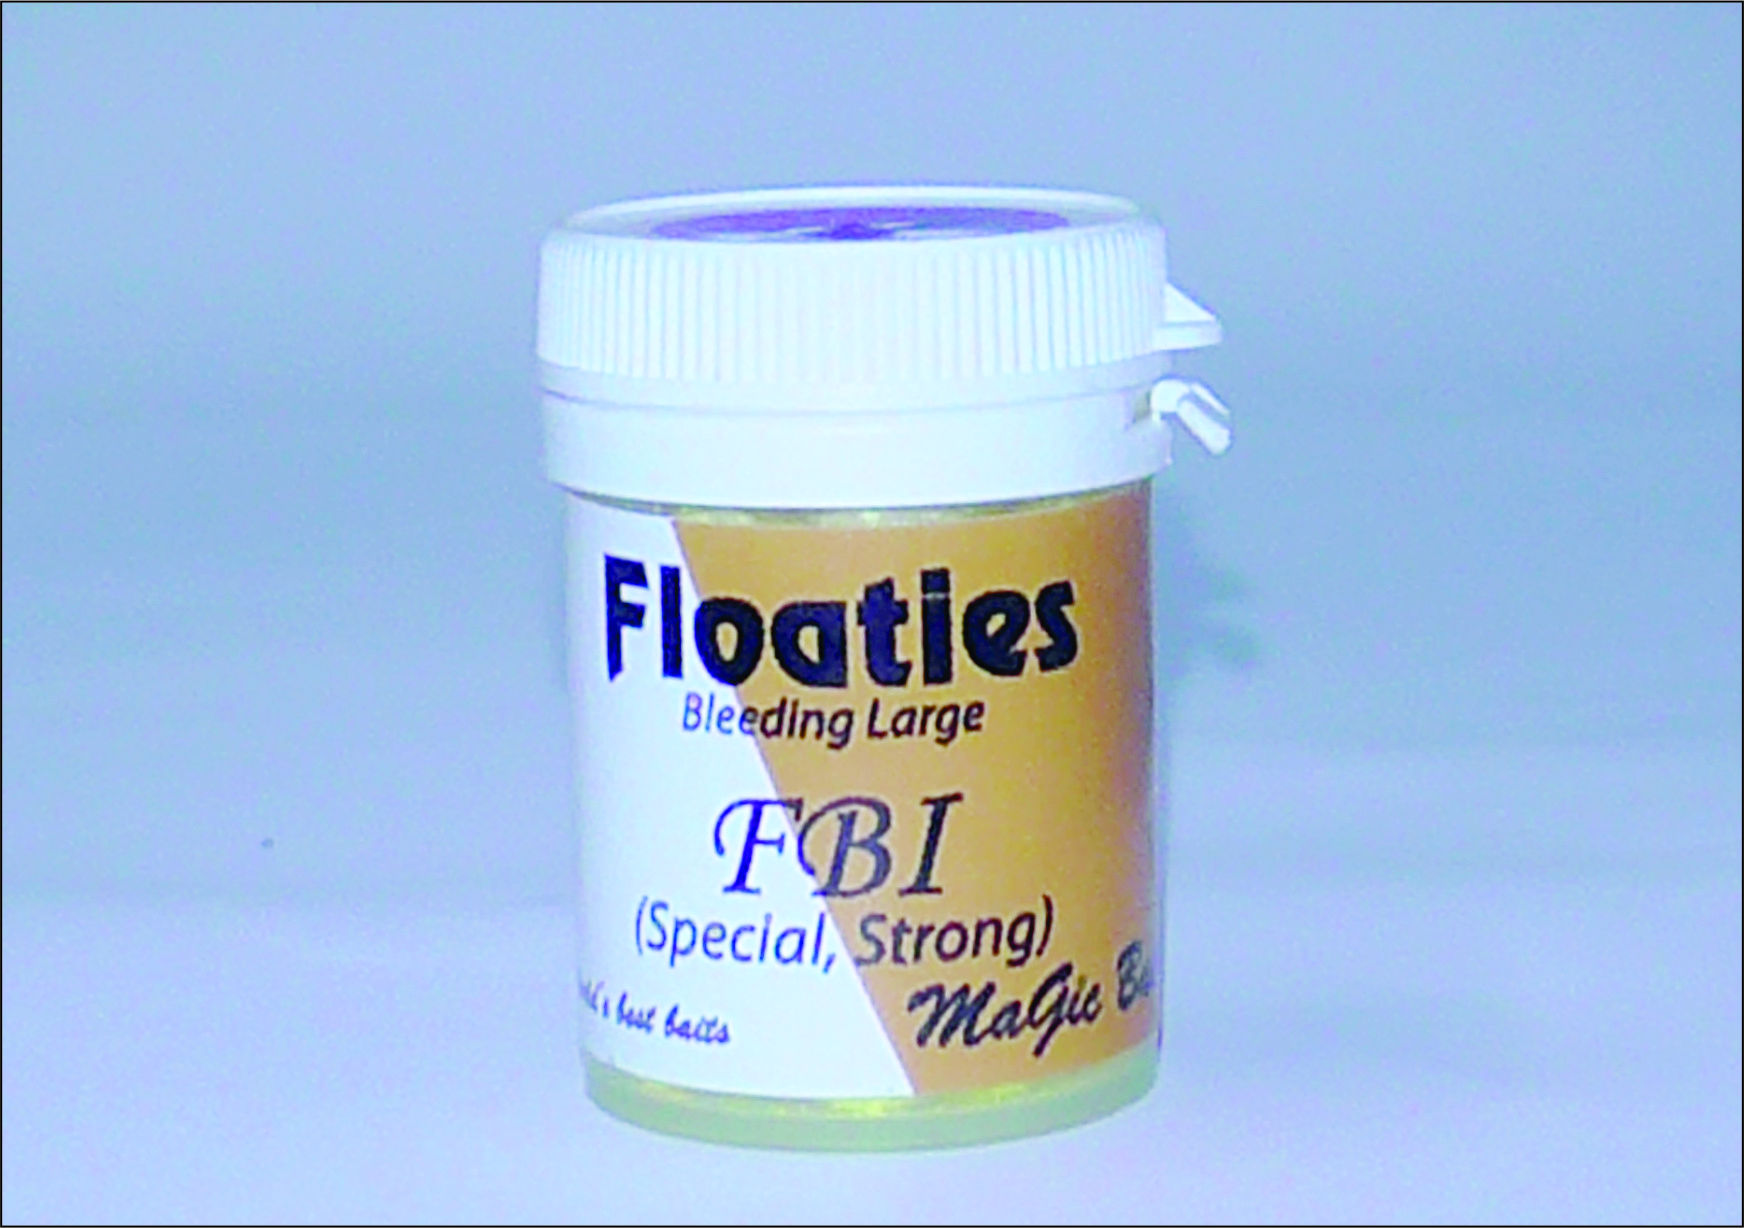 Fbi Large Bleeding Floaties